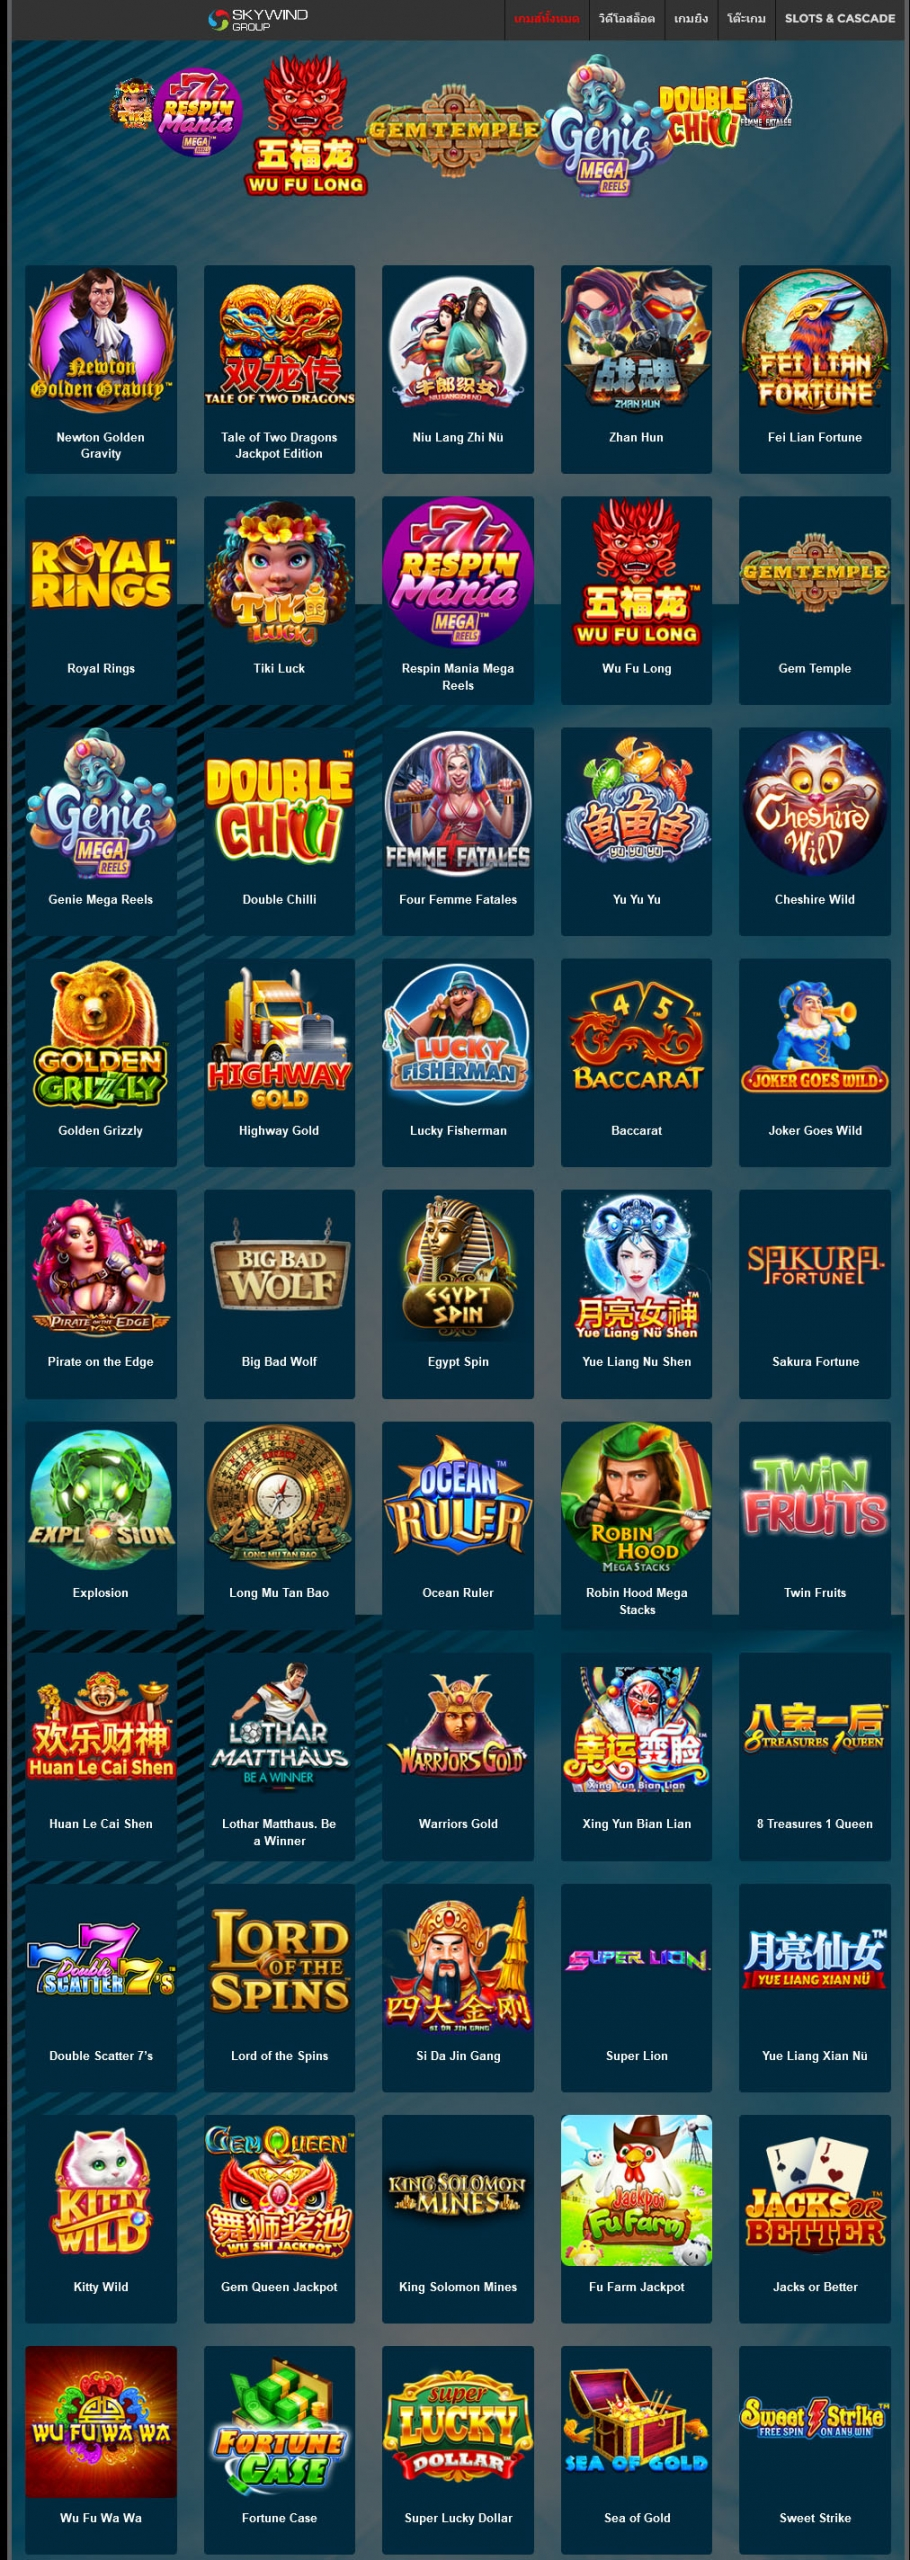 สล็อต skywind slot game list 1